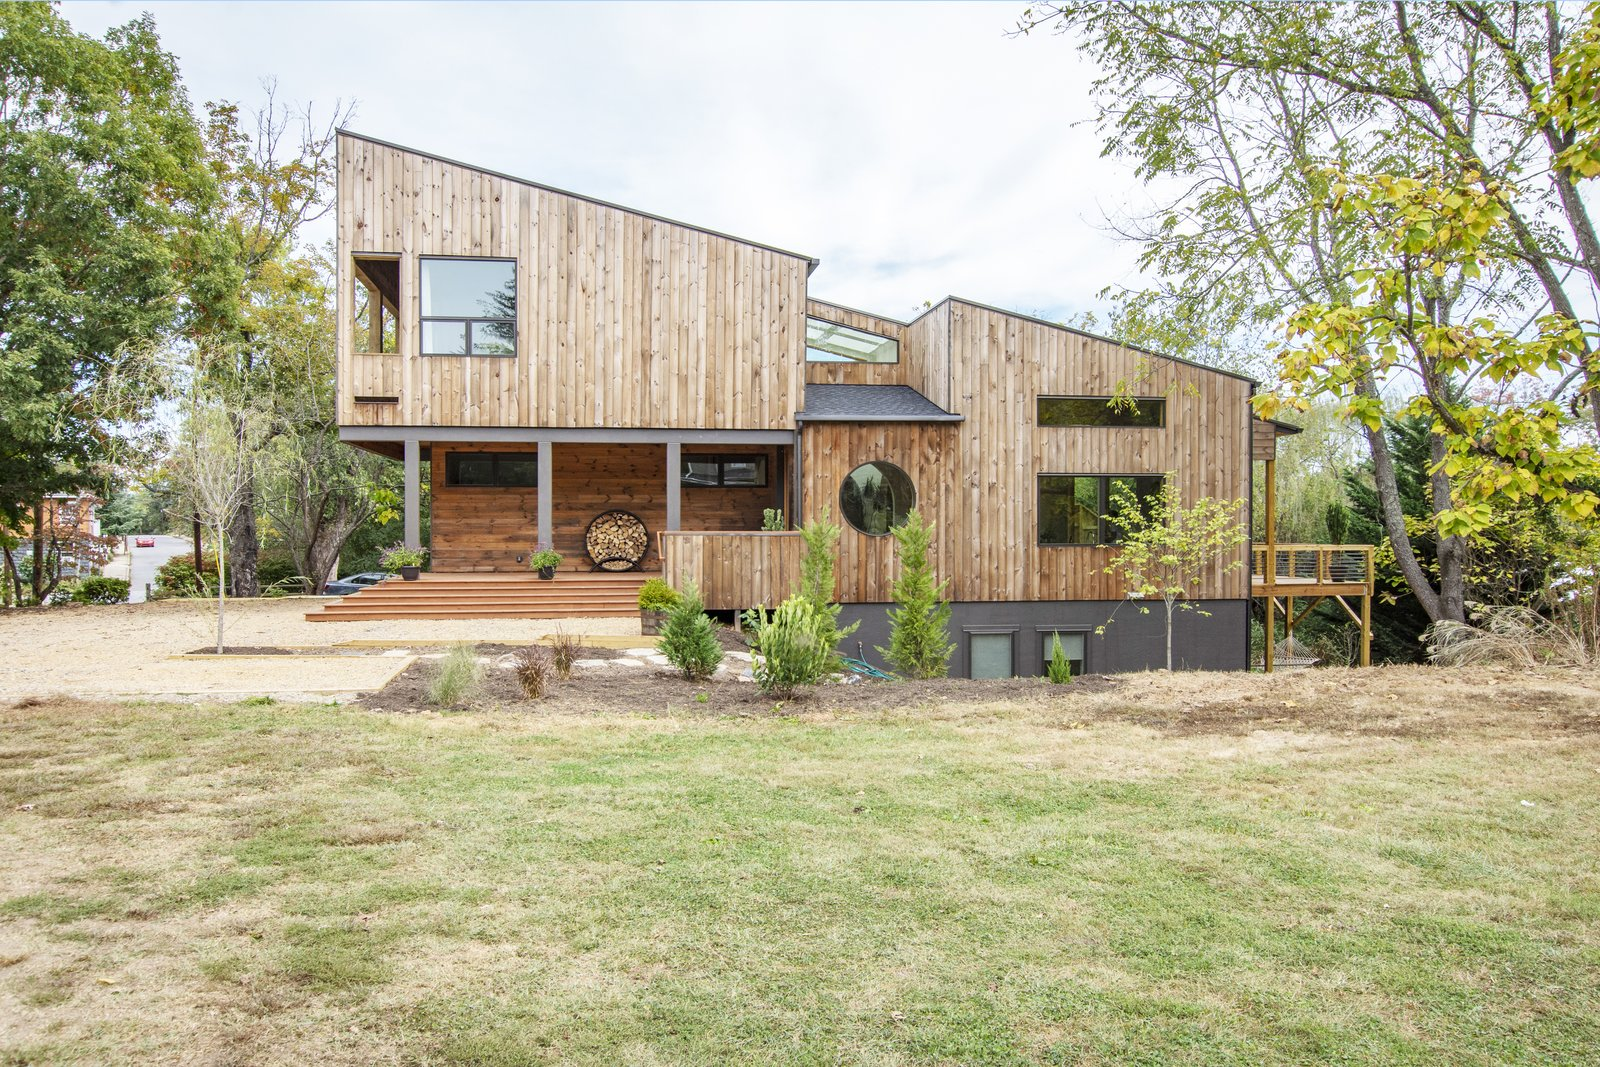 Locally milled cypress siding, a naturally rot resistant wood, will darken over time.